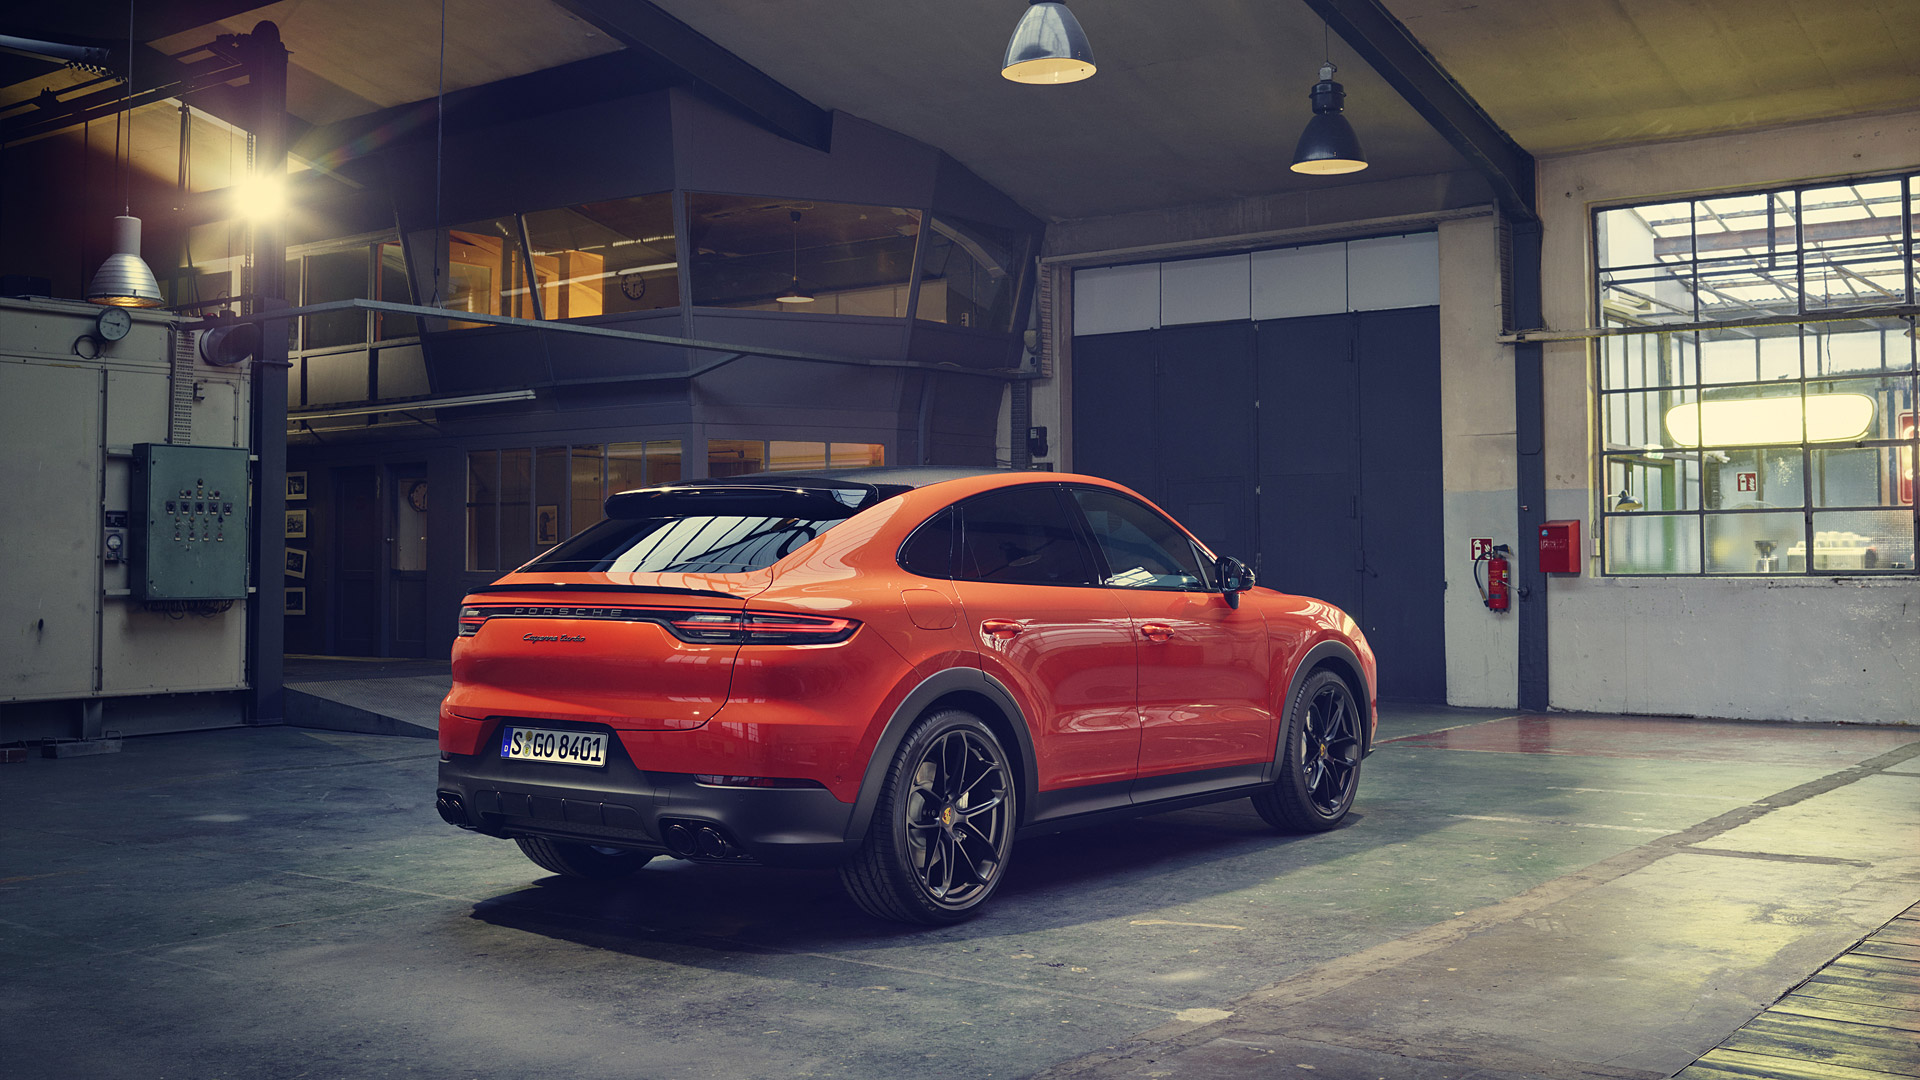 2020 Porsche Cayenne Turbo Coupe Wallpapers HD Images   WSupercars 1920x1080